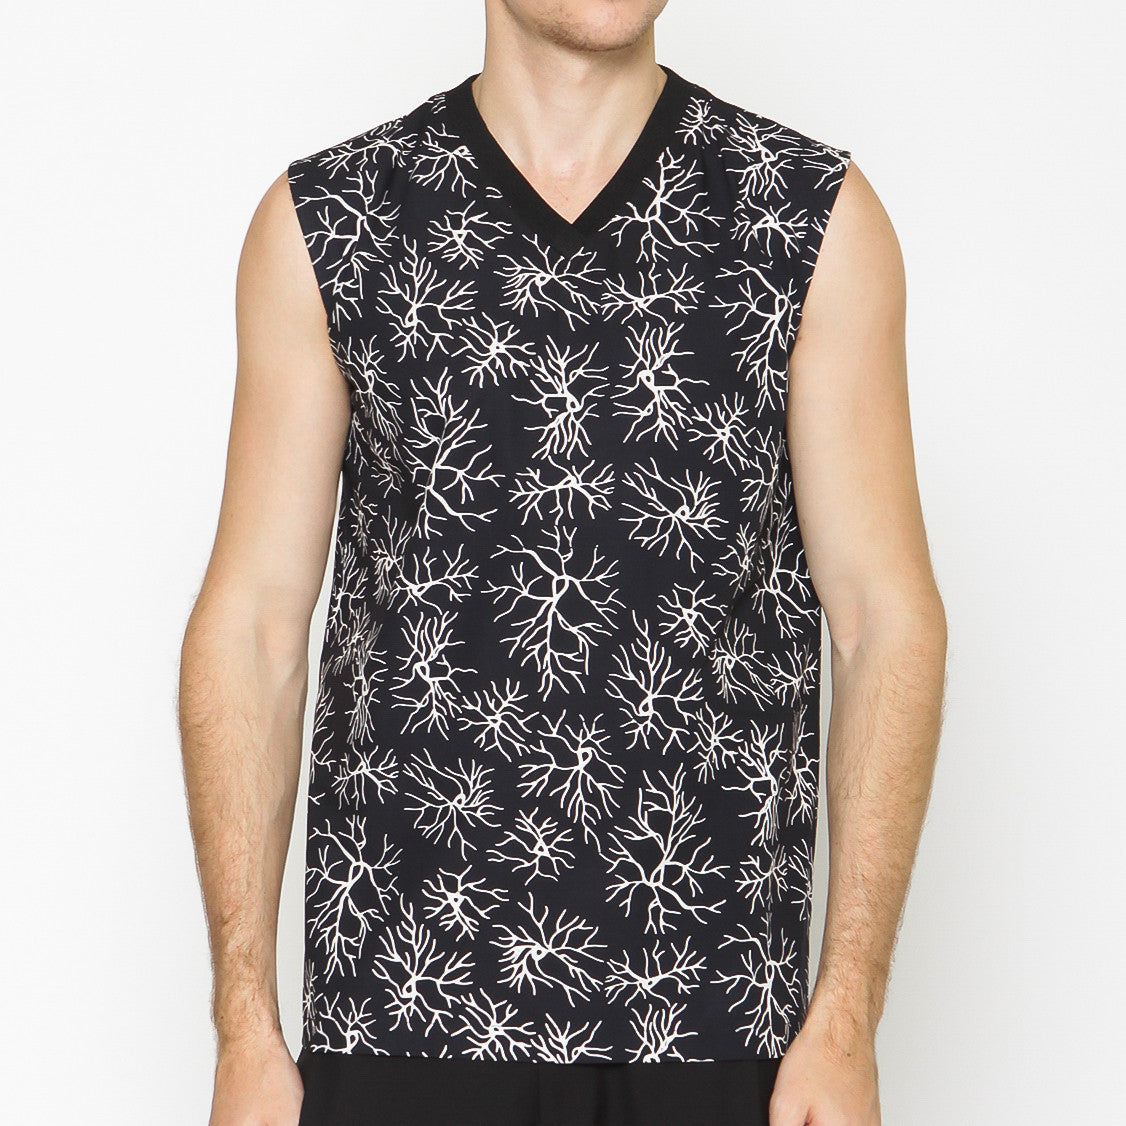 Men Sleeveless Top : Veins